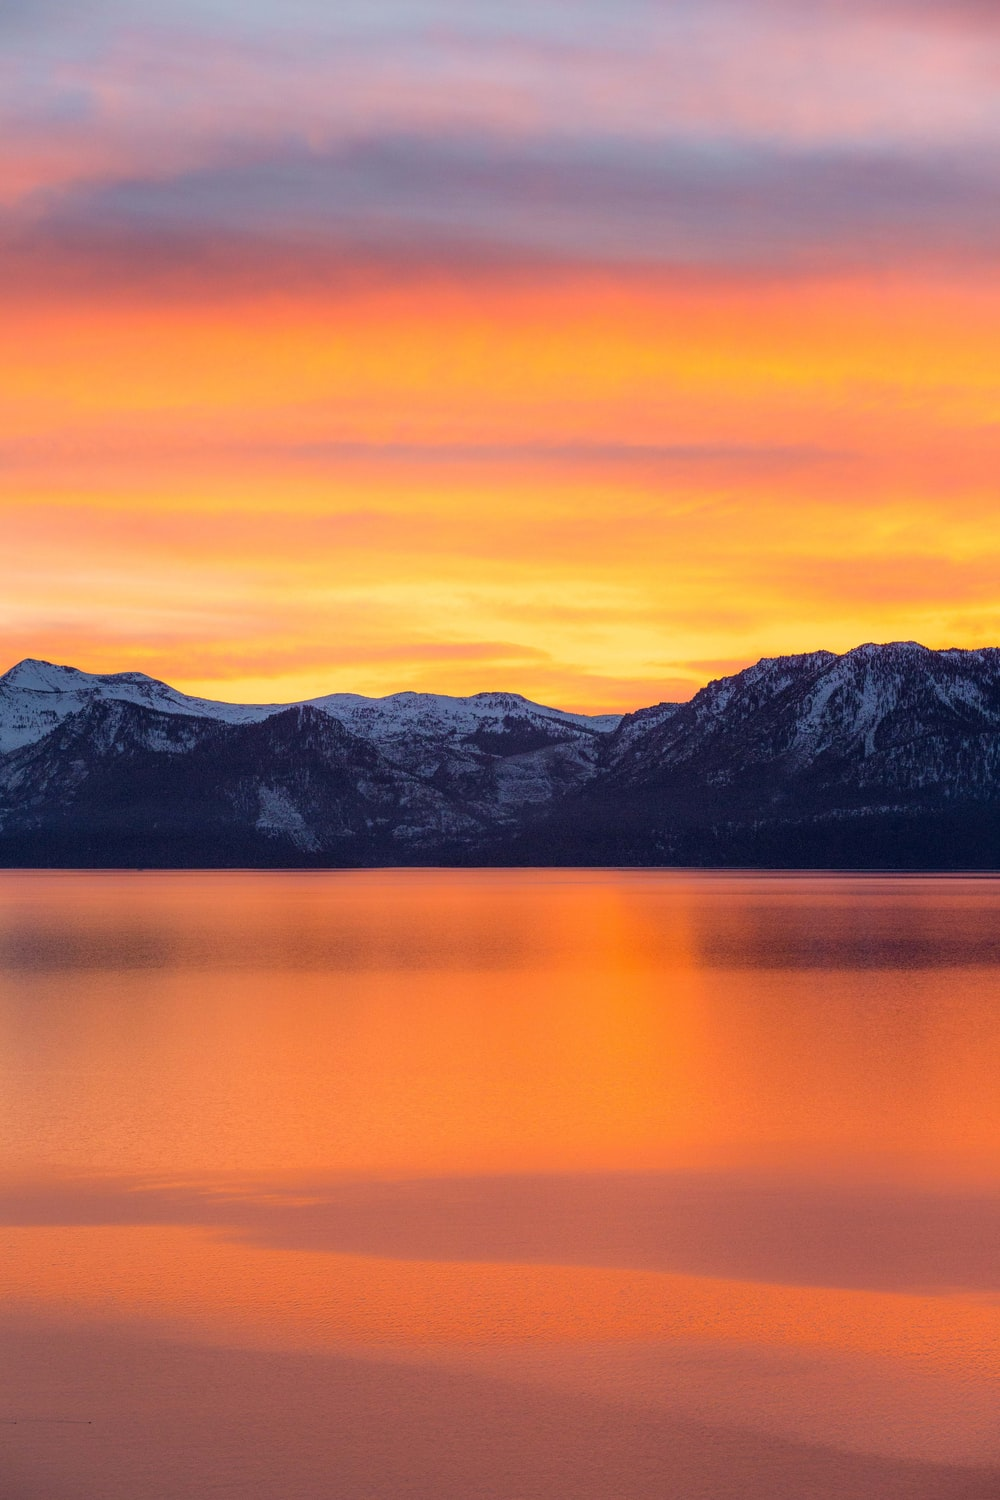 mountains and lake during sunset